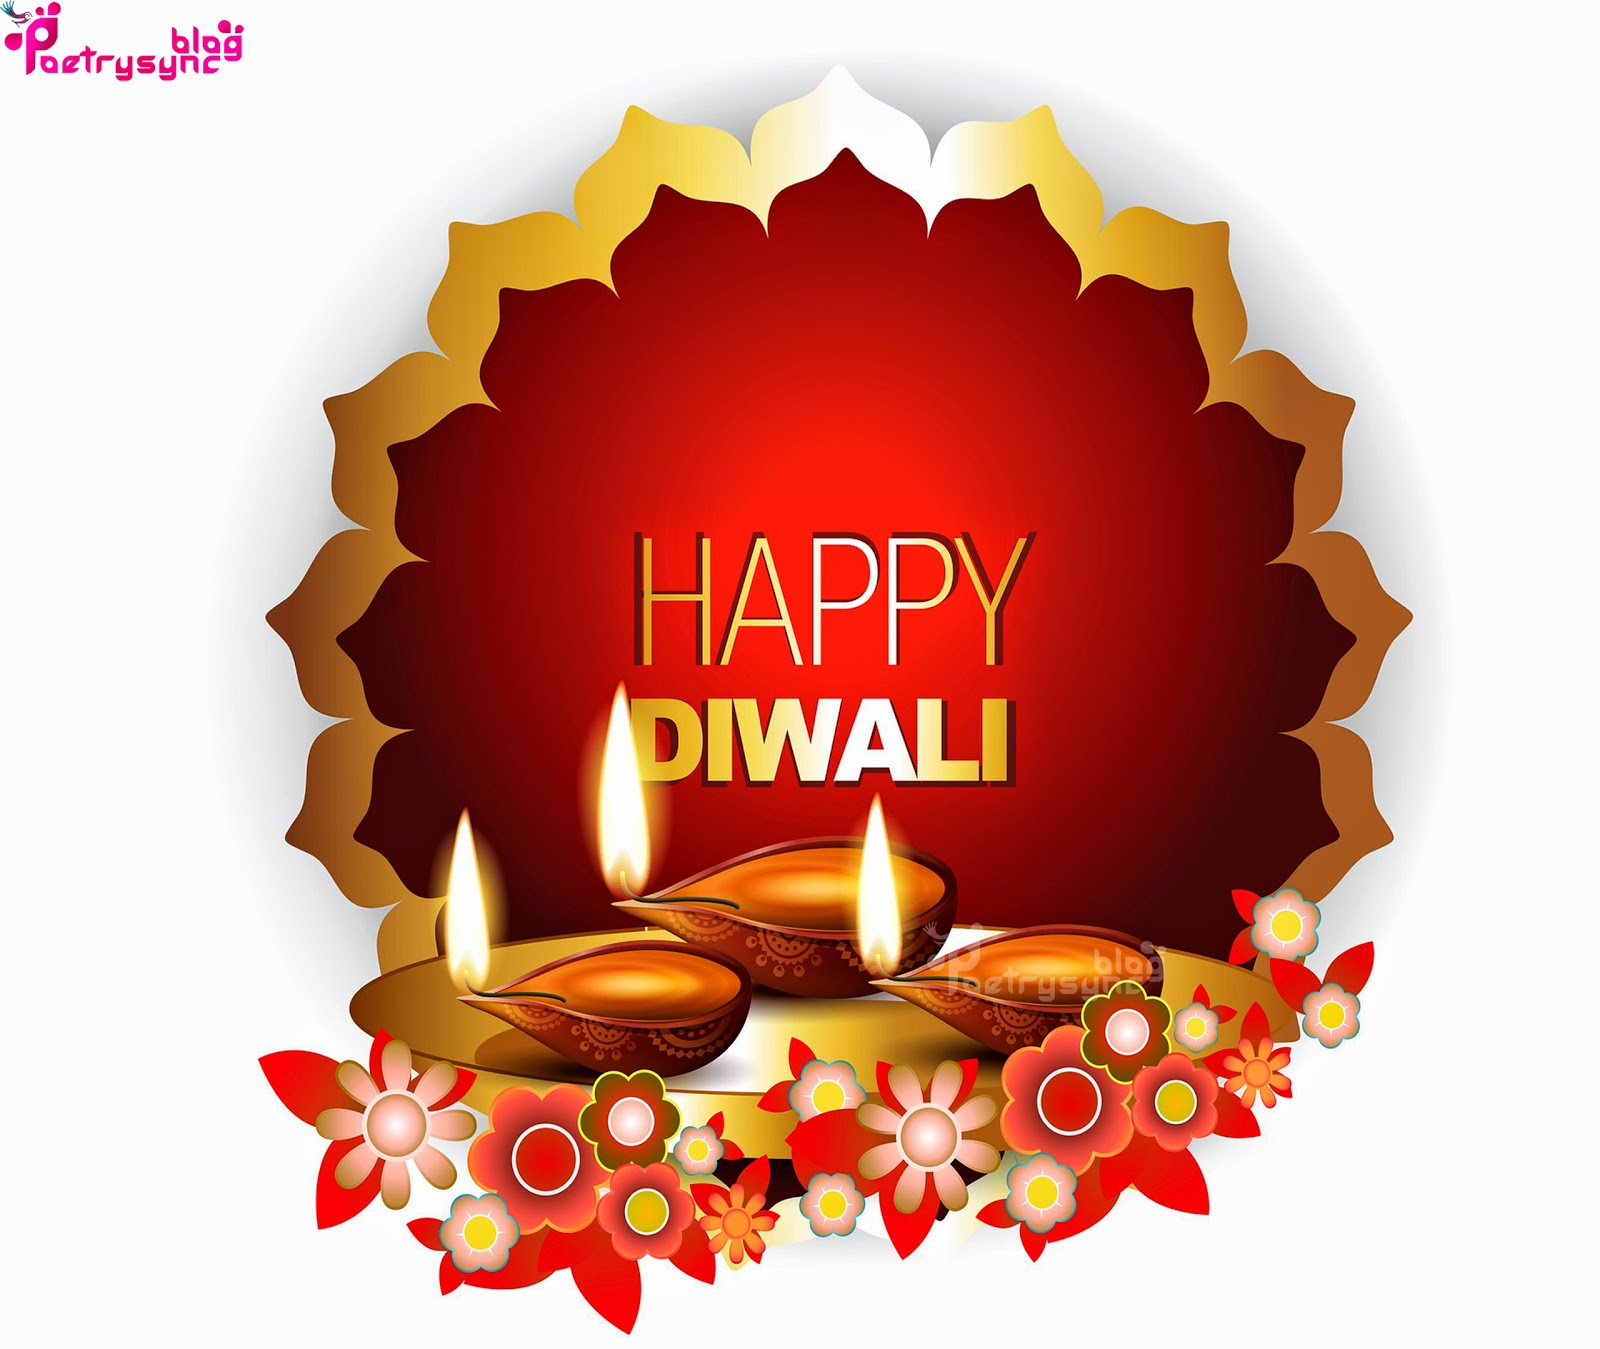 Happy Deepavali Quotes In English: Happy Diwali Wallpapers With Information In English